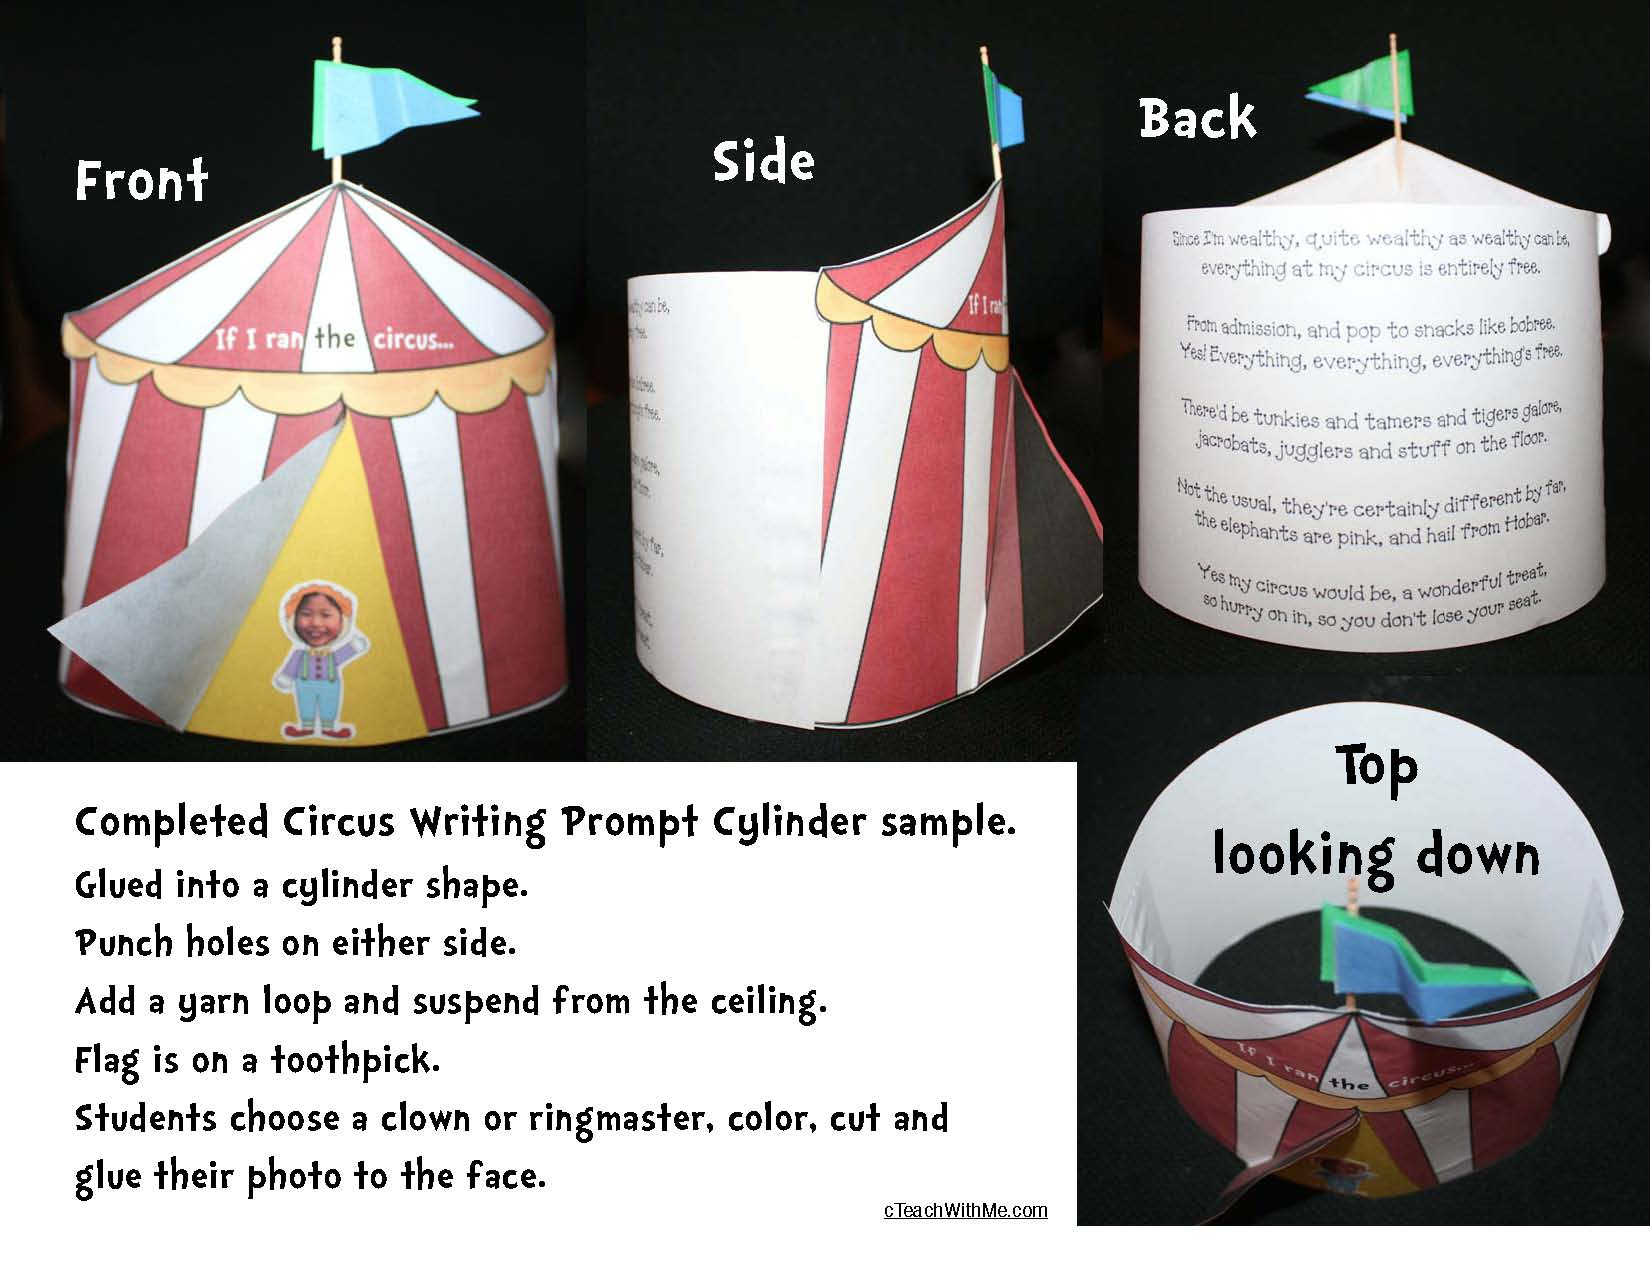 seuss songs, seuss games, if i ran the circus activities, circus activities, circus tent template, on beyond zebra activities, dr. seuss's abc book activities, seuss writing prompts, seuss class made books, seuss alphabet book, seuss alphabet cards, writing prompts for march, march writing prompts, writing prompts for dr seuss, dr seuss activities, common core seuss